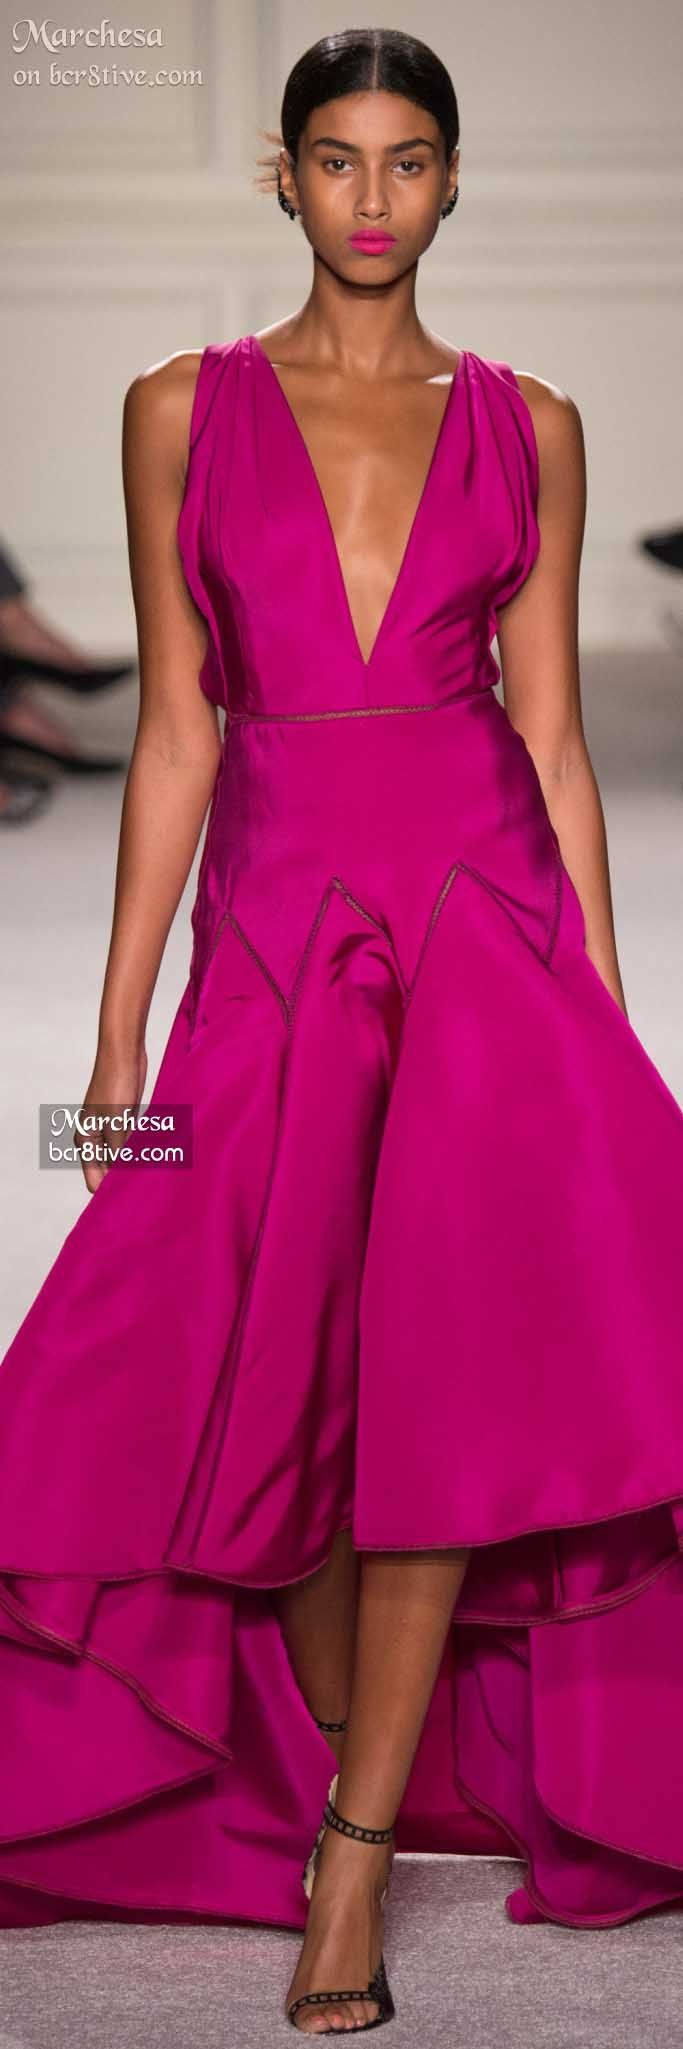 "Marchesa Spring 2016 ""And the LORD said to Moses, ""Go to the people and consecrate them today and tomorrow. Have them wash their clothes."" Exodus 19:10"